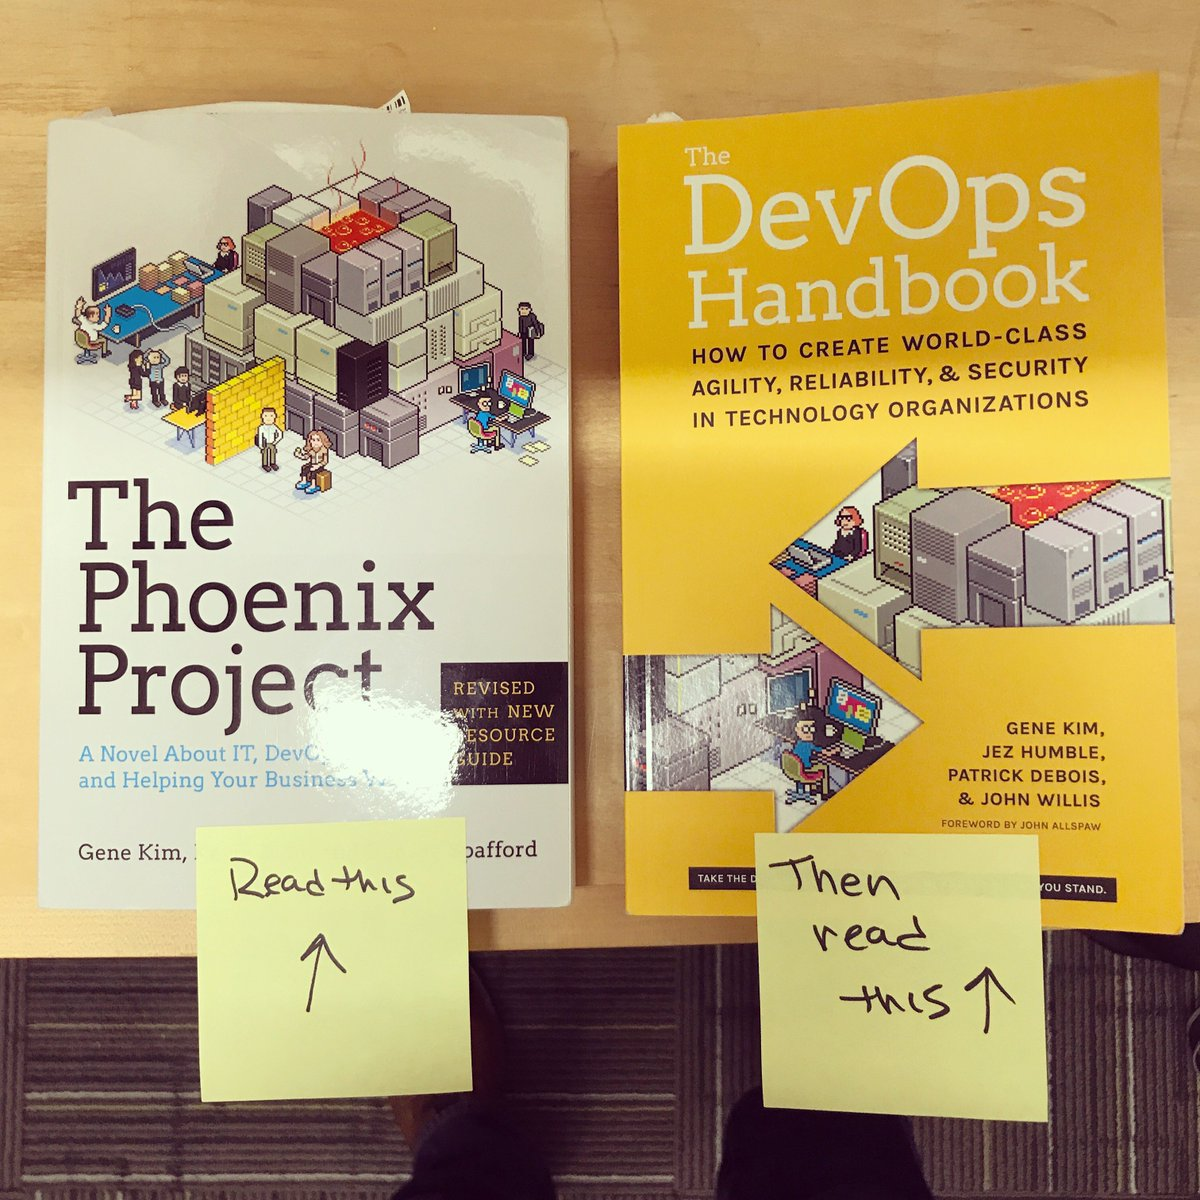 New hire onboarding procedures.  #devops https://t.co/gaw6MVjTQi